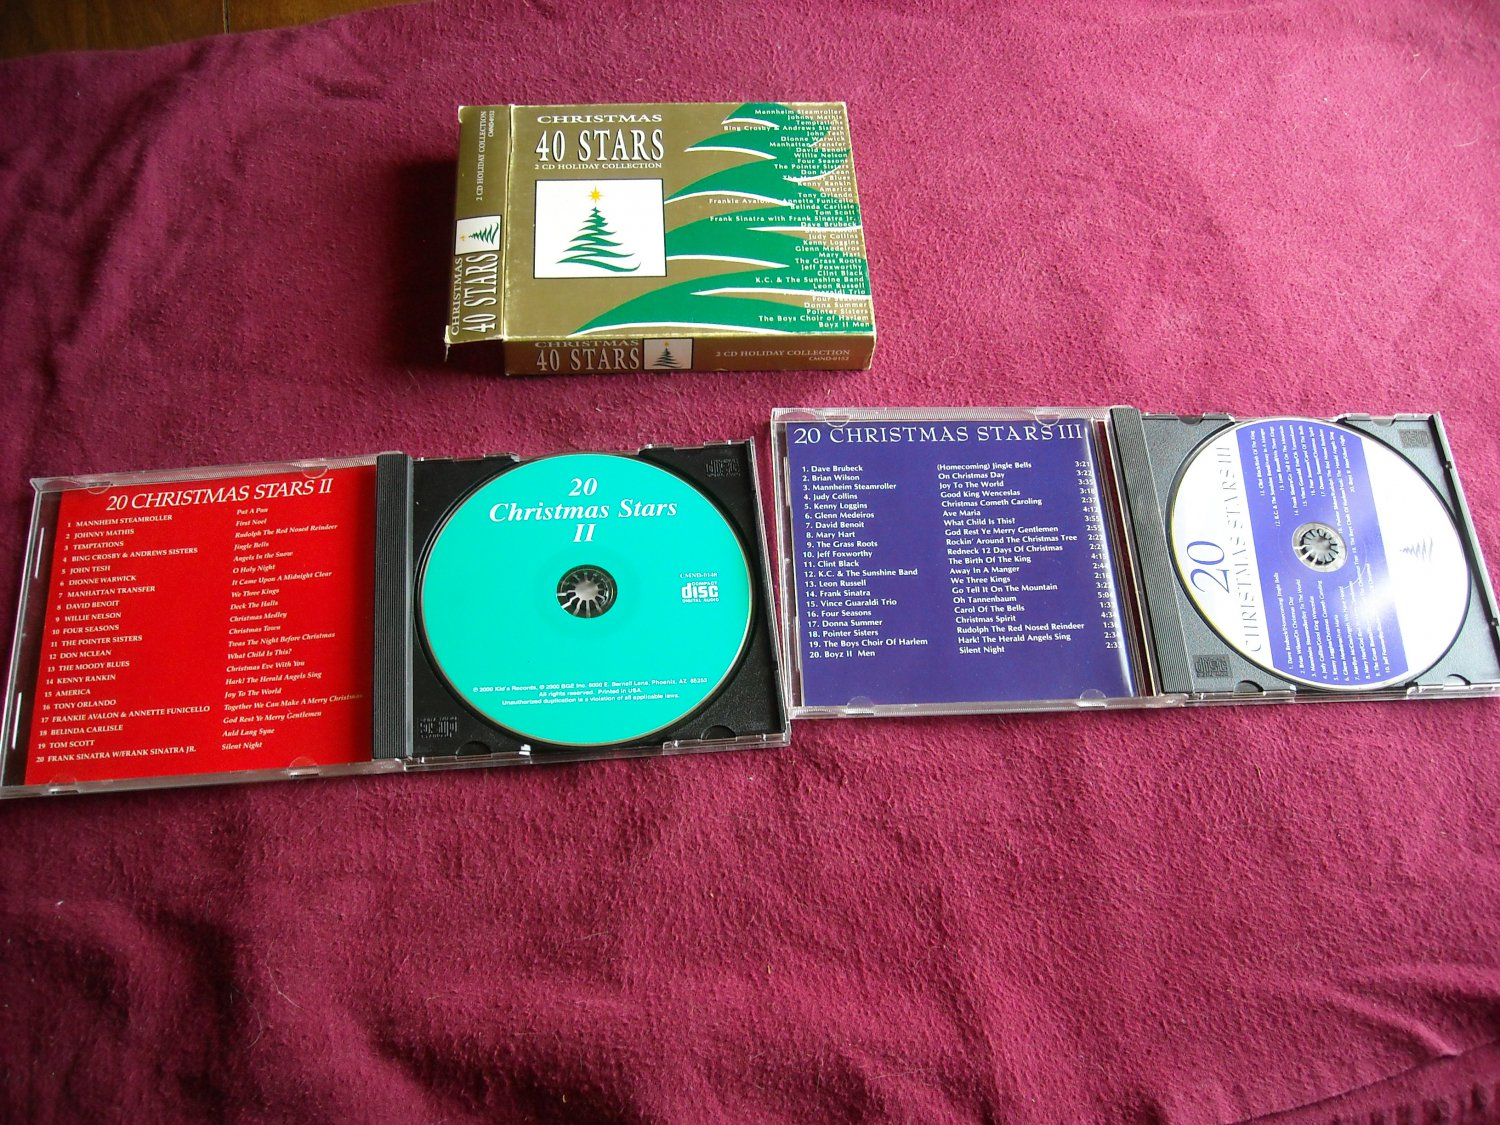 Christmas 40 Stars 2 CD Holiday Collection Music